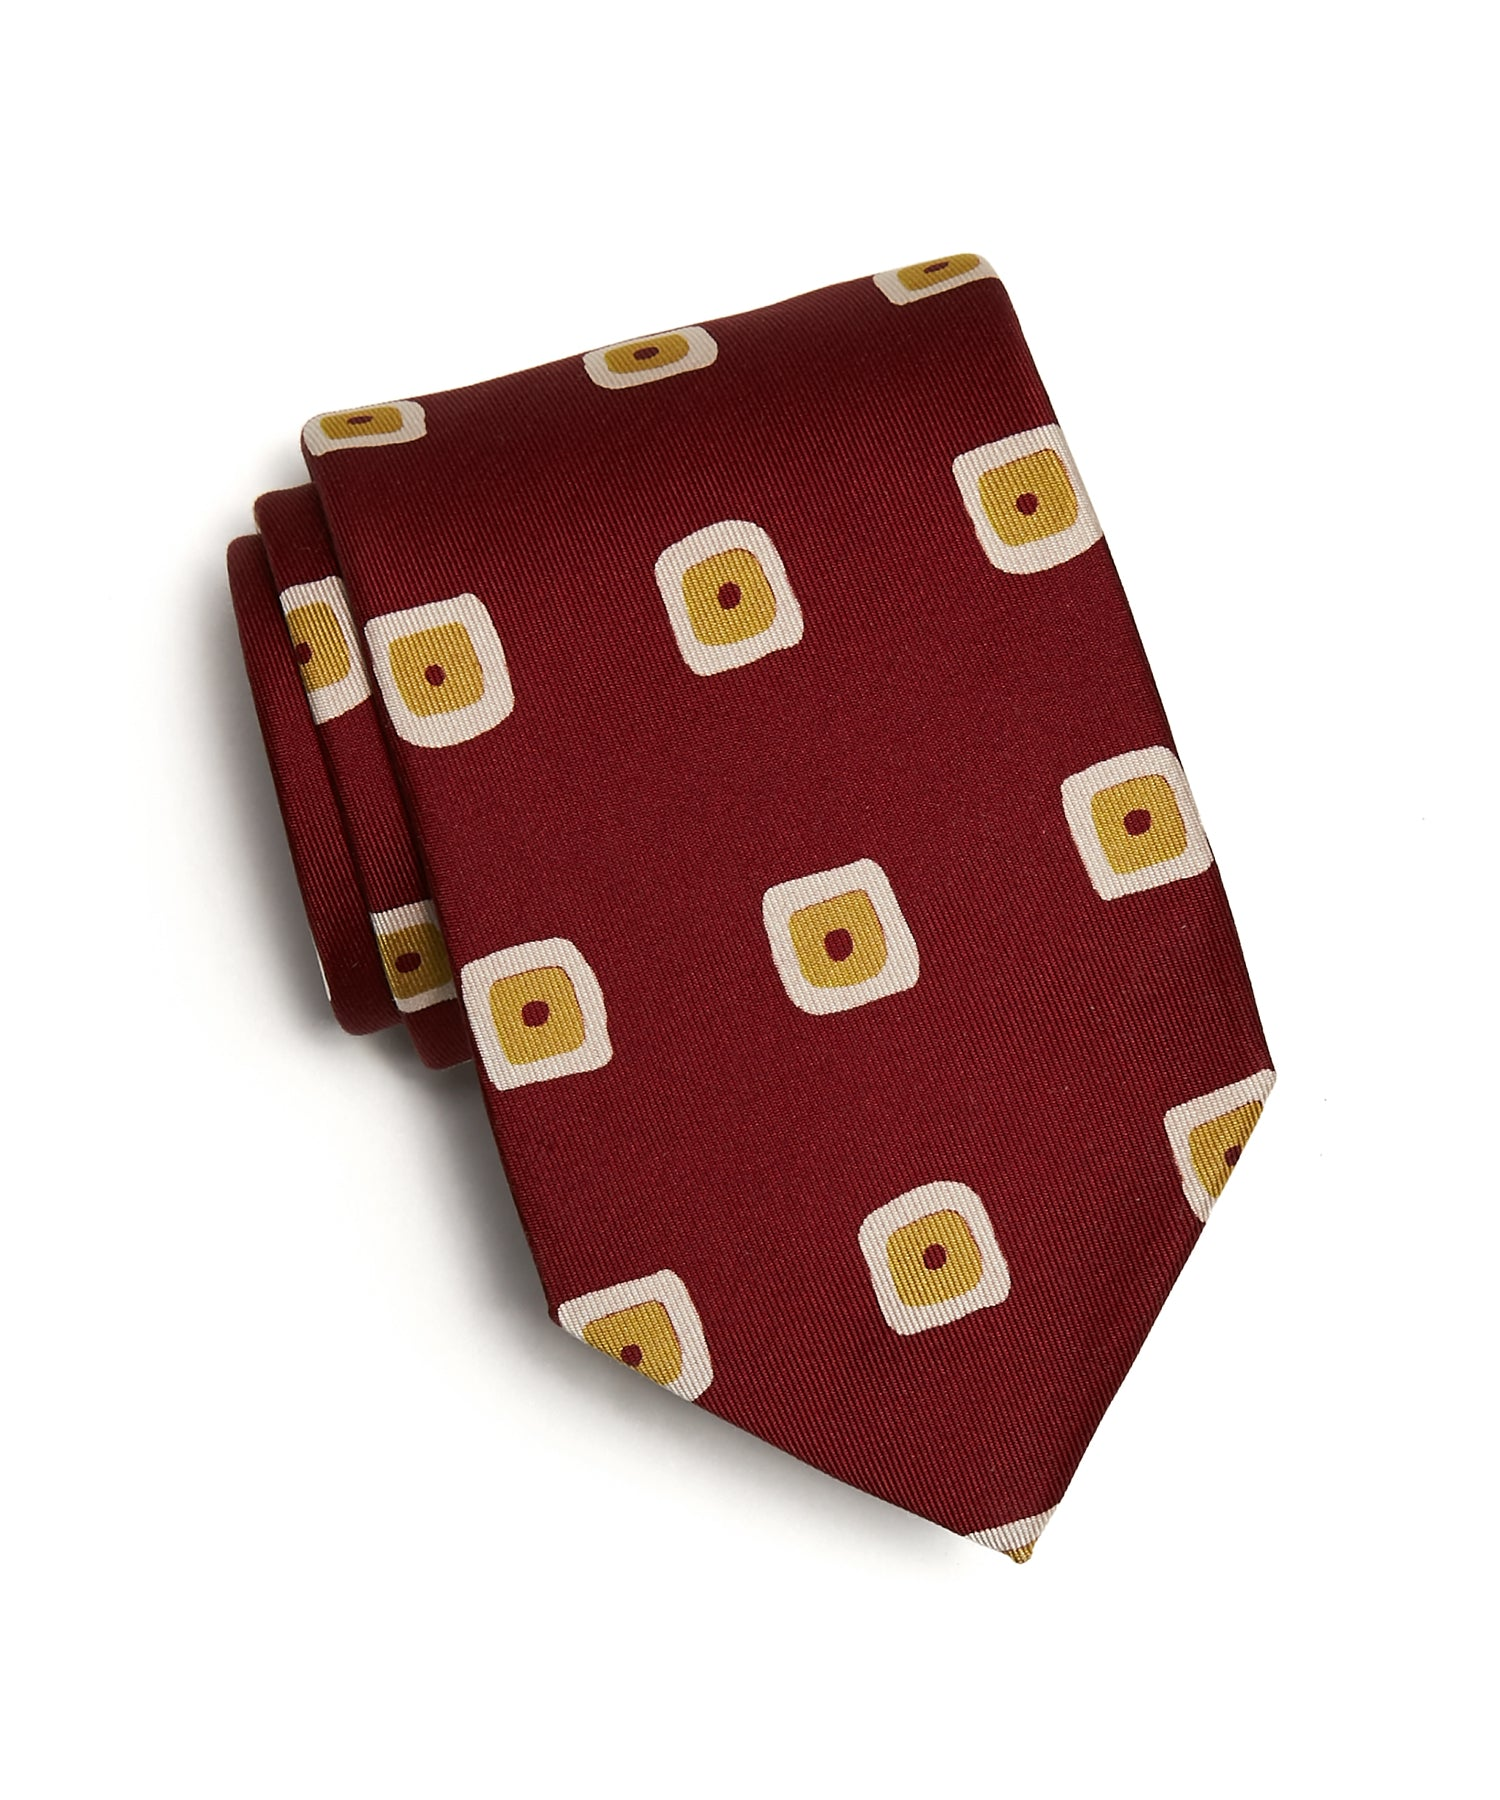 Drakes Painted Square Print 36oz Madder Silk Tie in Red